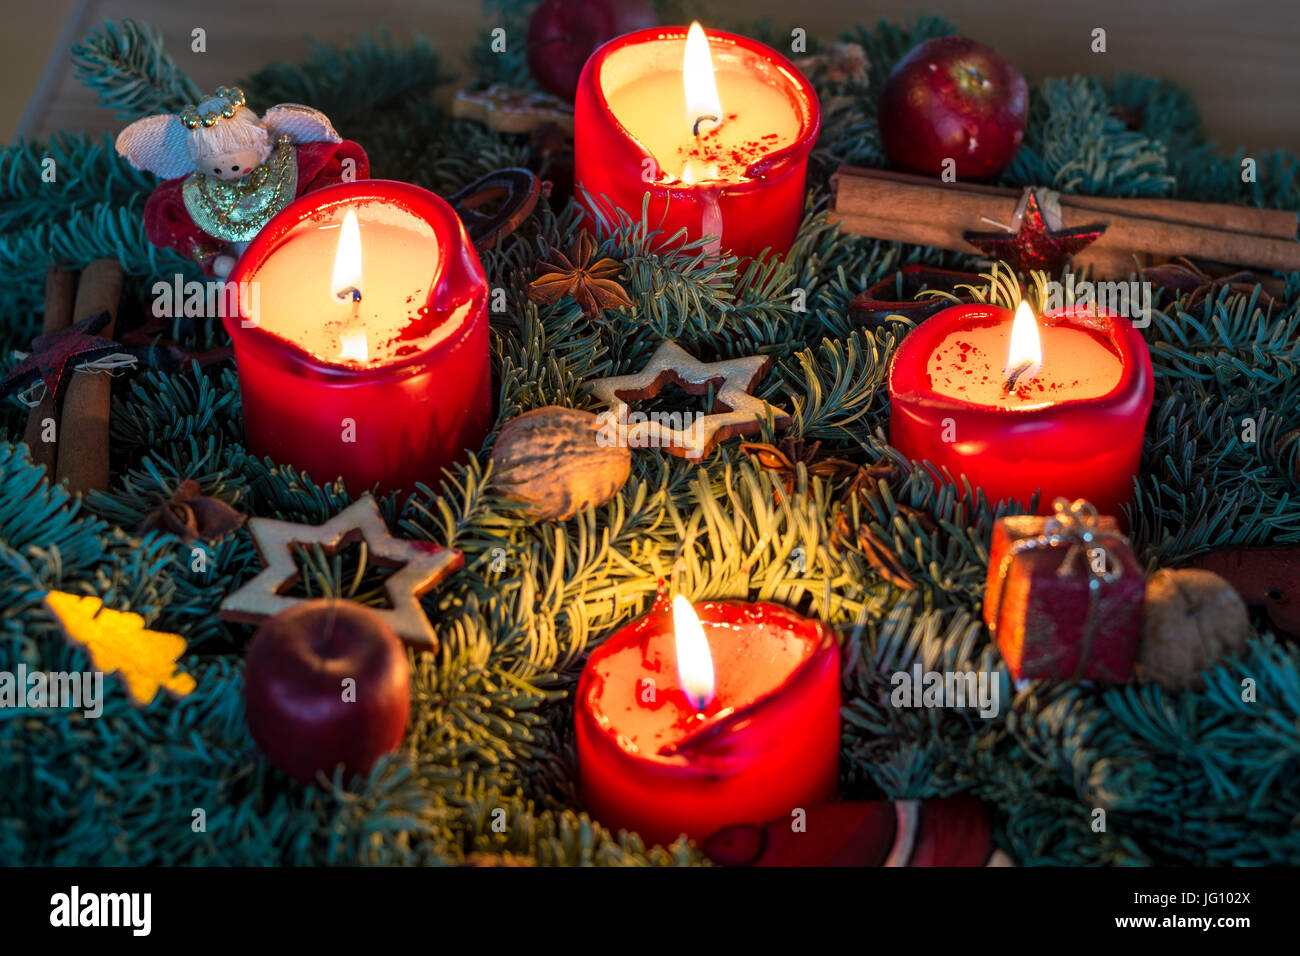 Advent Wreath With Lit Red Candles From Above